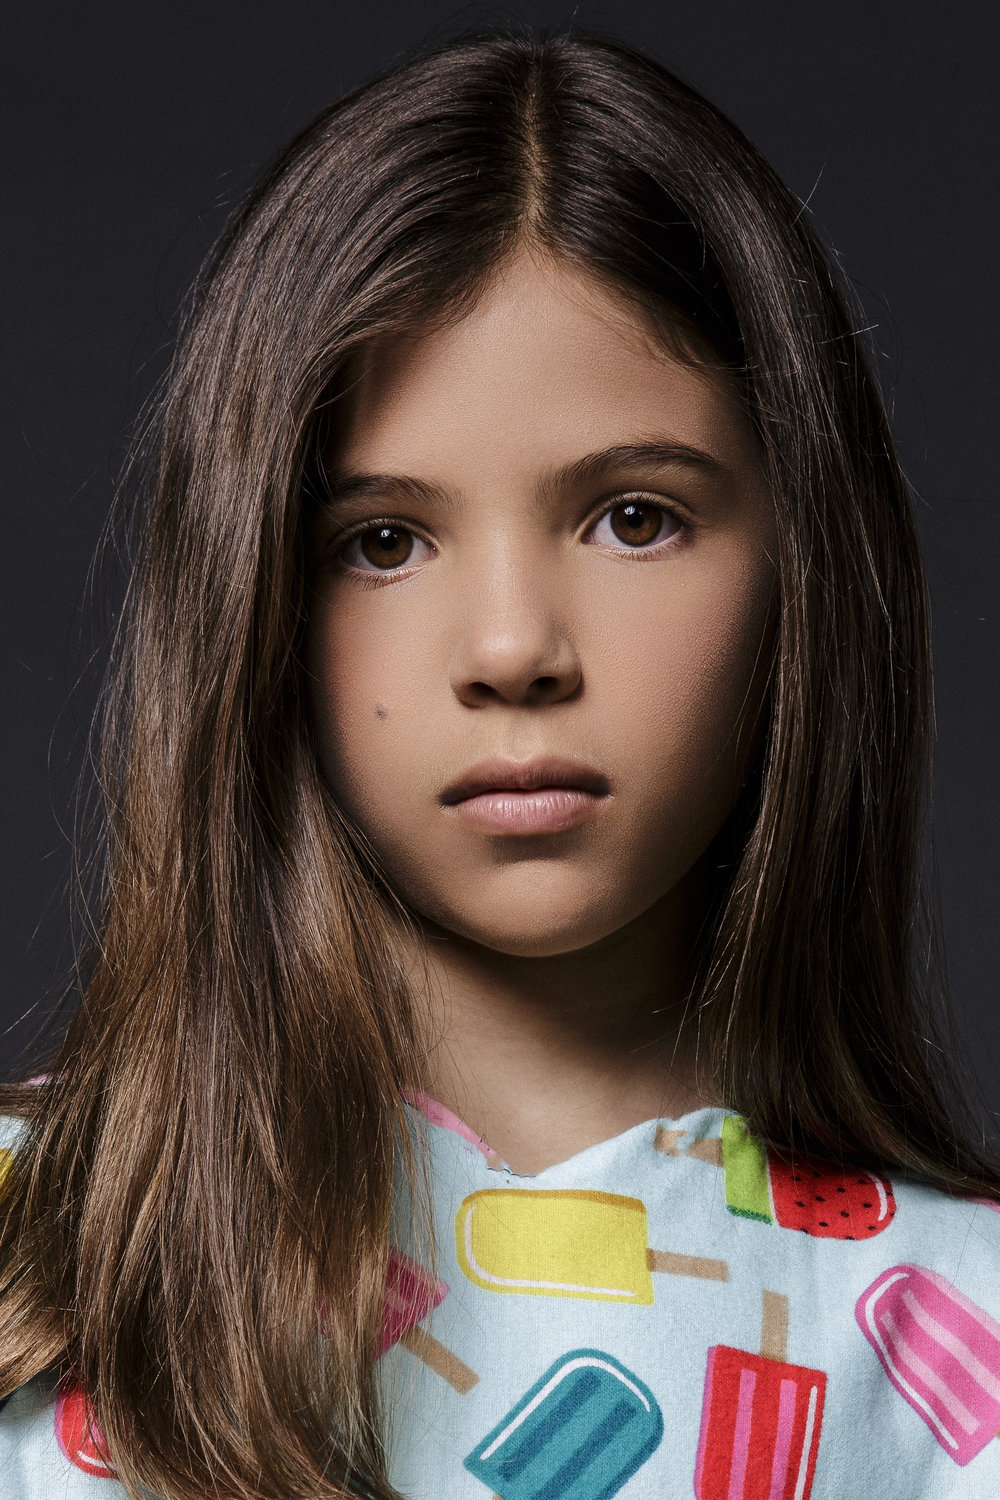 Lola Sultan - Lola Sultan, co-star of Bernie the Dolphin is 10 years old. She is an actress, model and singer from Santa Monica. Lola was excited to perform a duet with Madison Mosley on a track for the film. She can't wait for you all to see the film and hear the song. #comingsoon